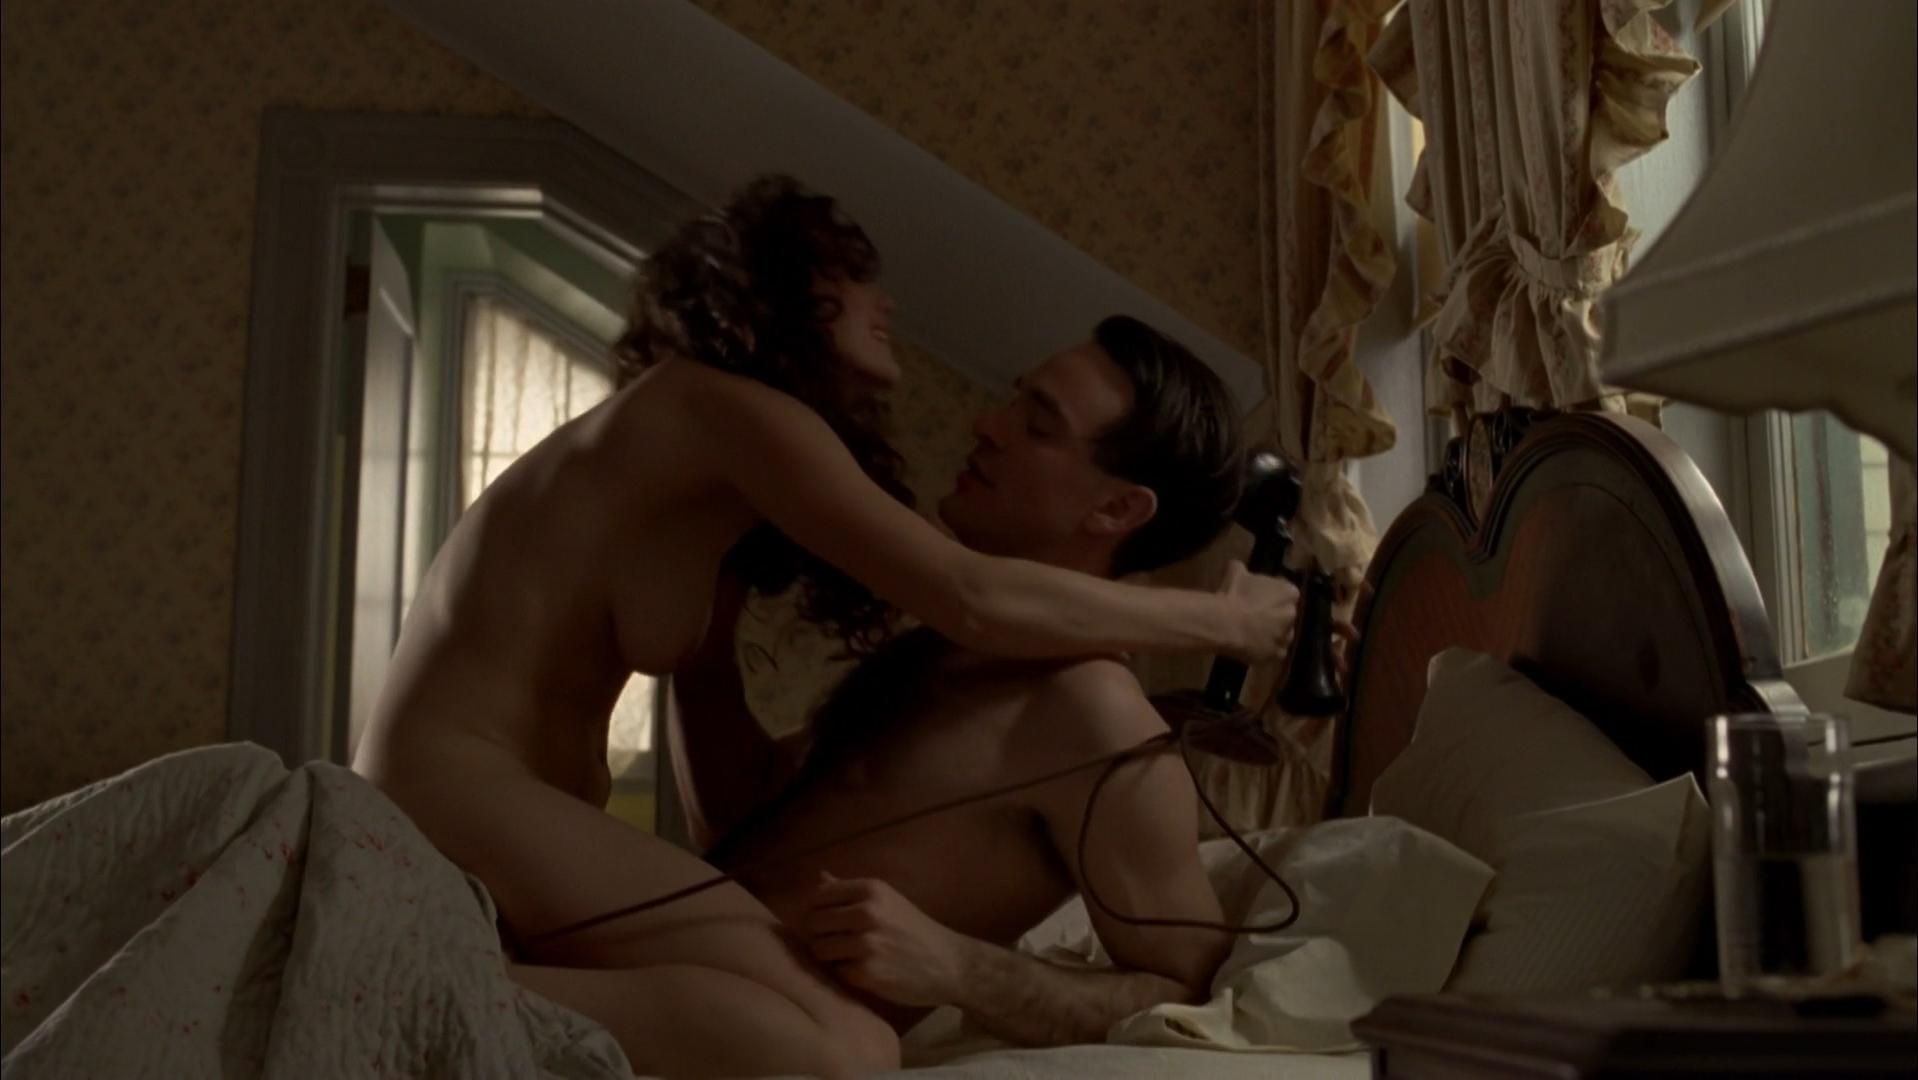 Heather Lind nude - Boardwalk Empire s03e04 (2012)